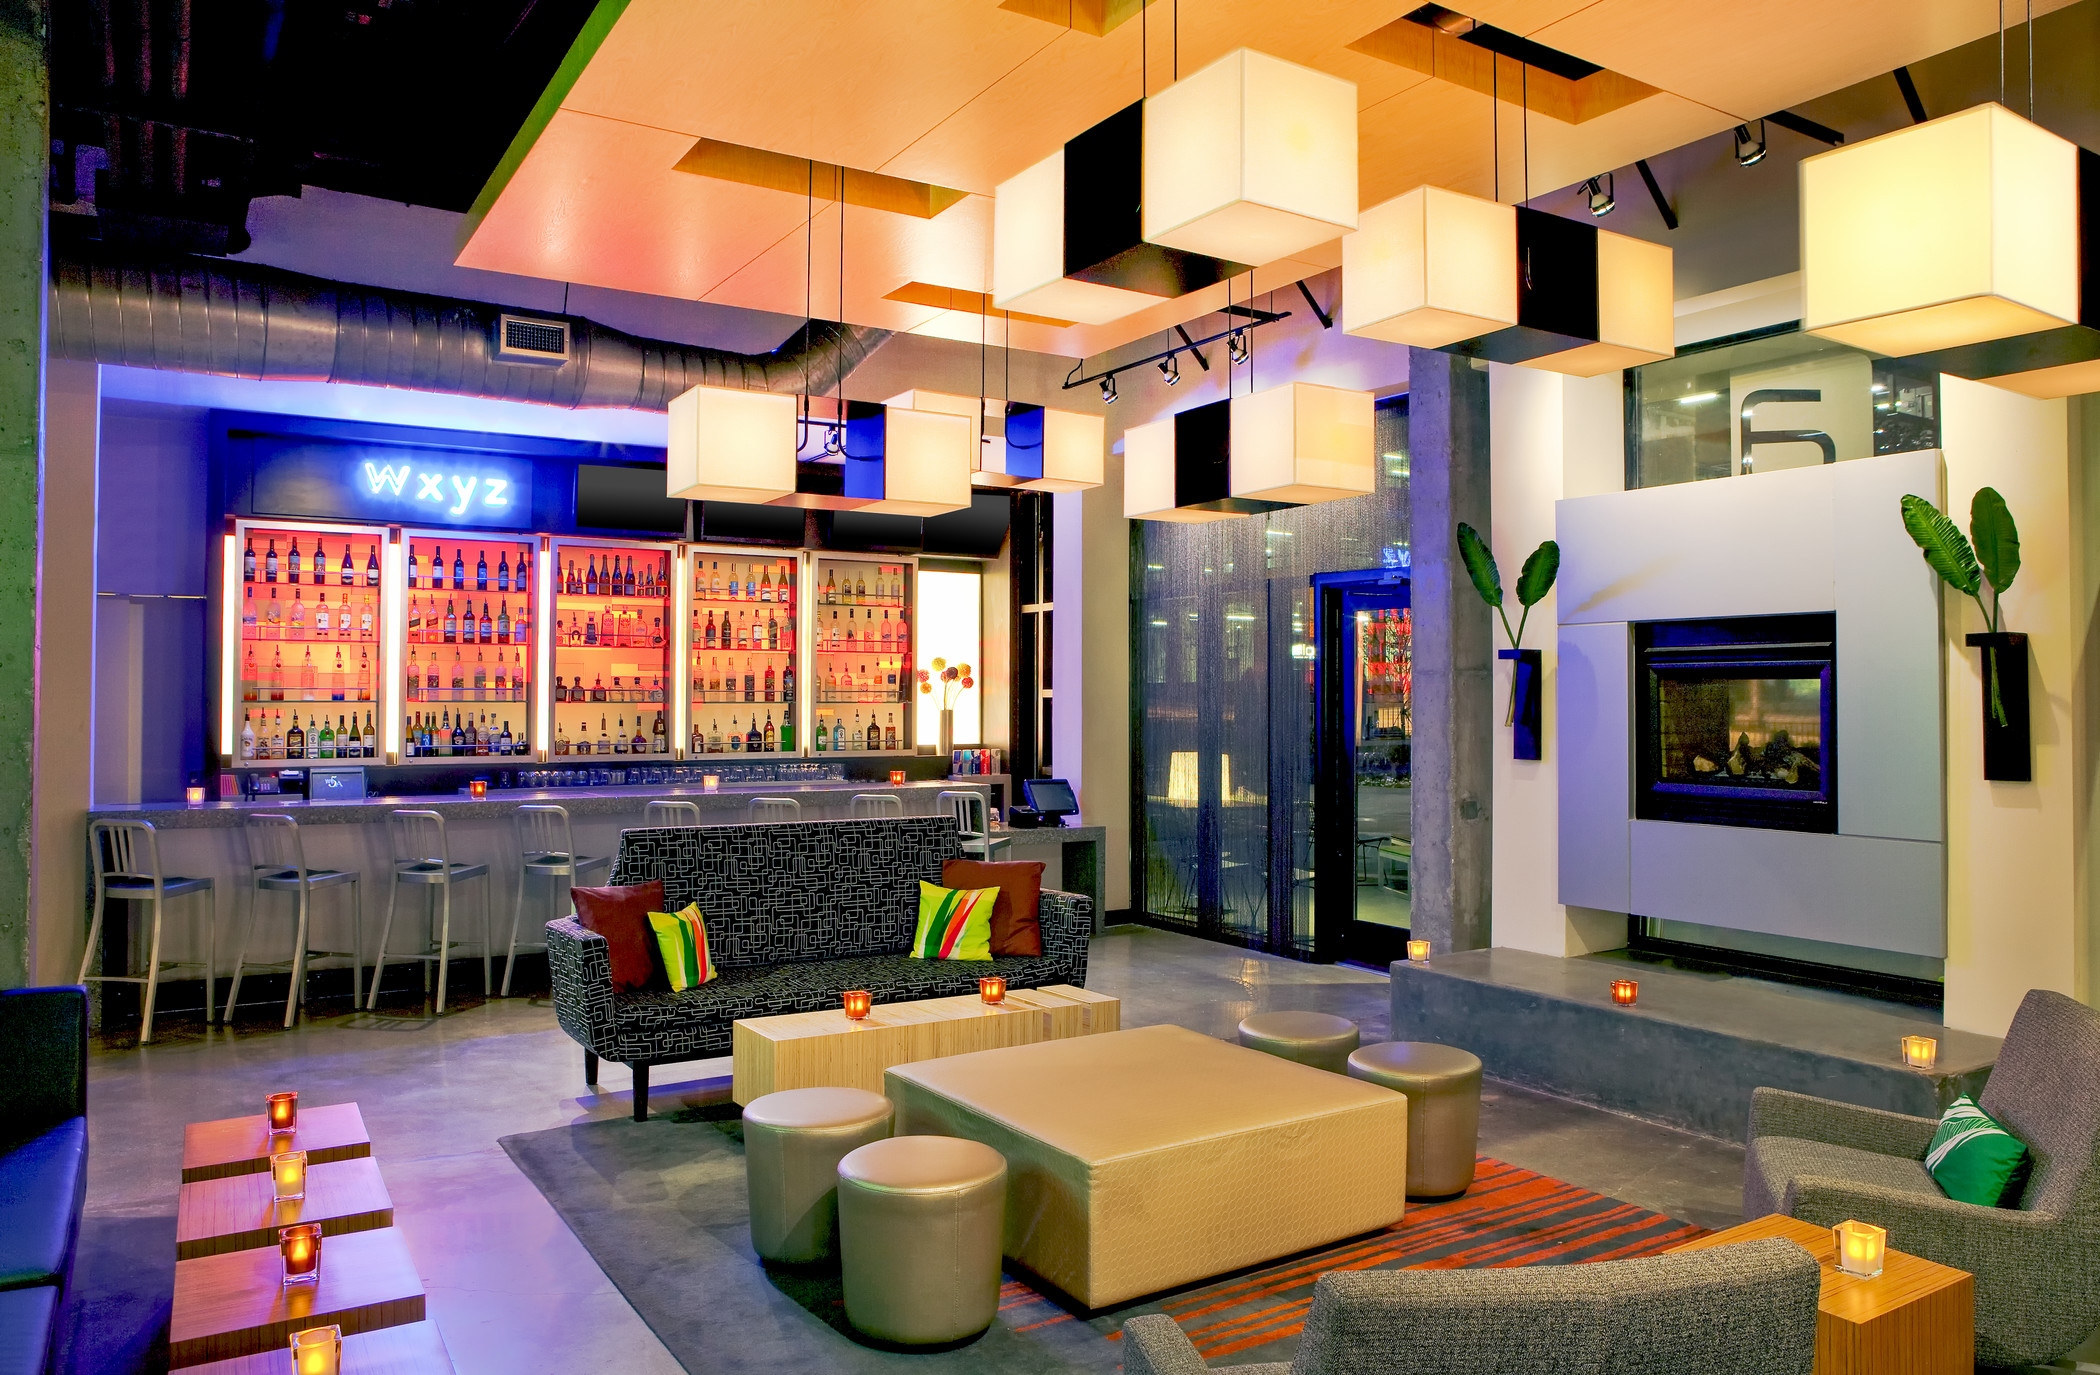 Atlanta_Aloft_WXYZ_Interior.jpg.jpg